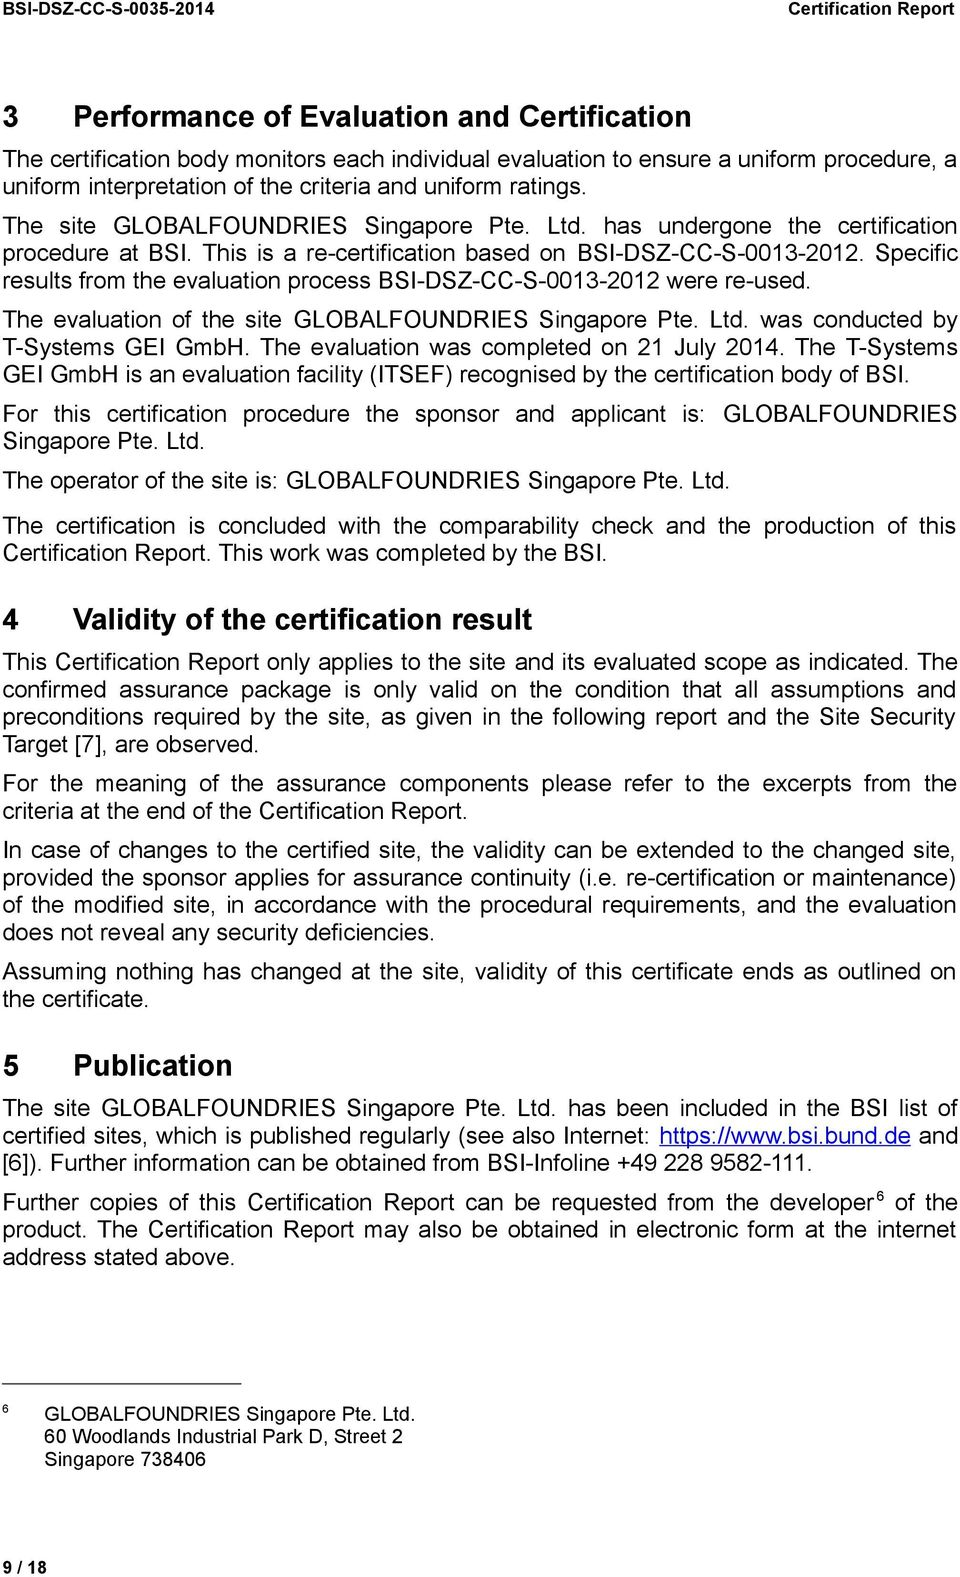 BSI-DSZ-CC-S for  GLOBALFOUNDRIES Singapore Pte  Ltd